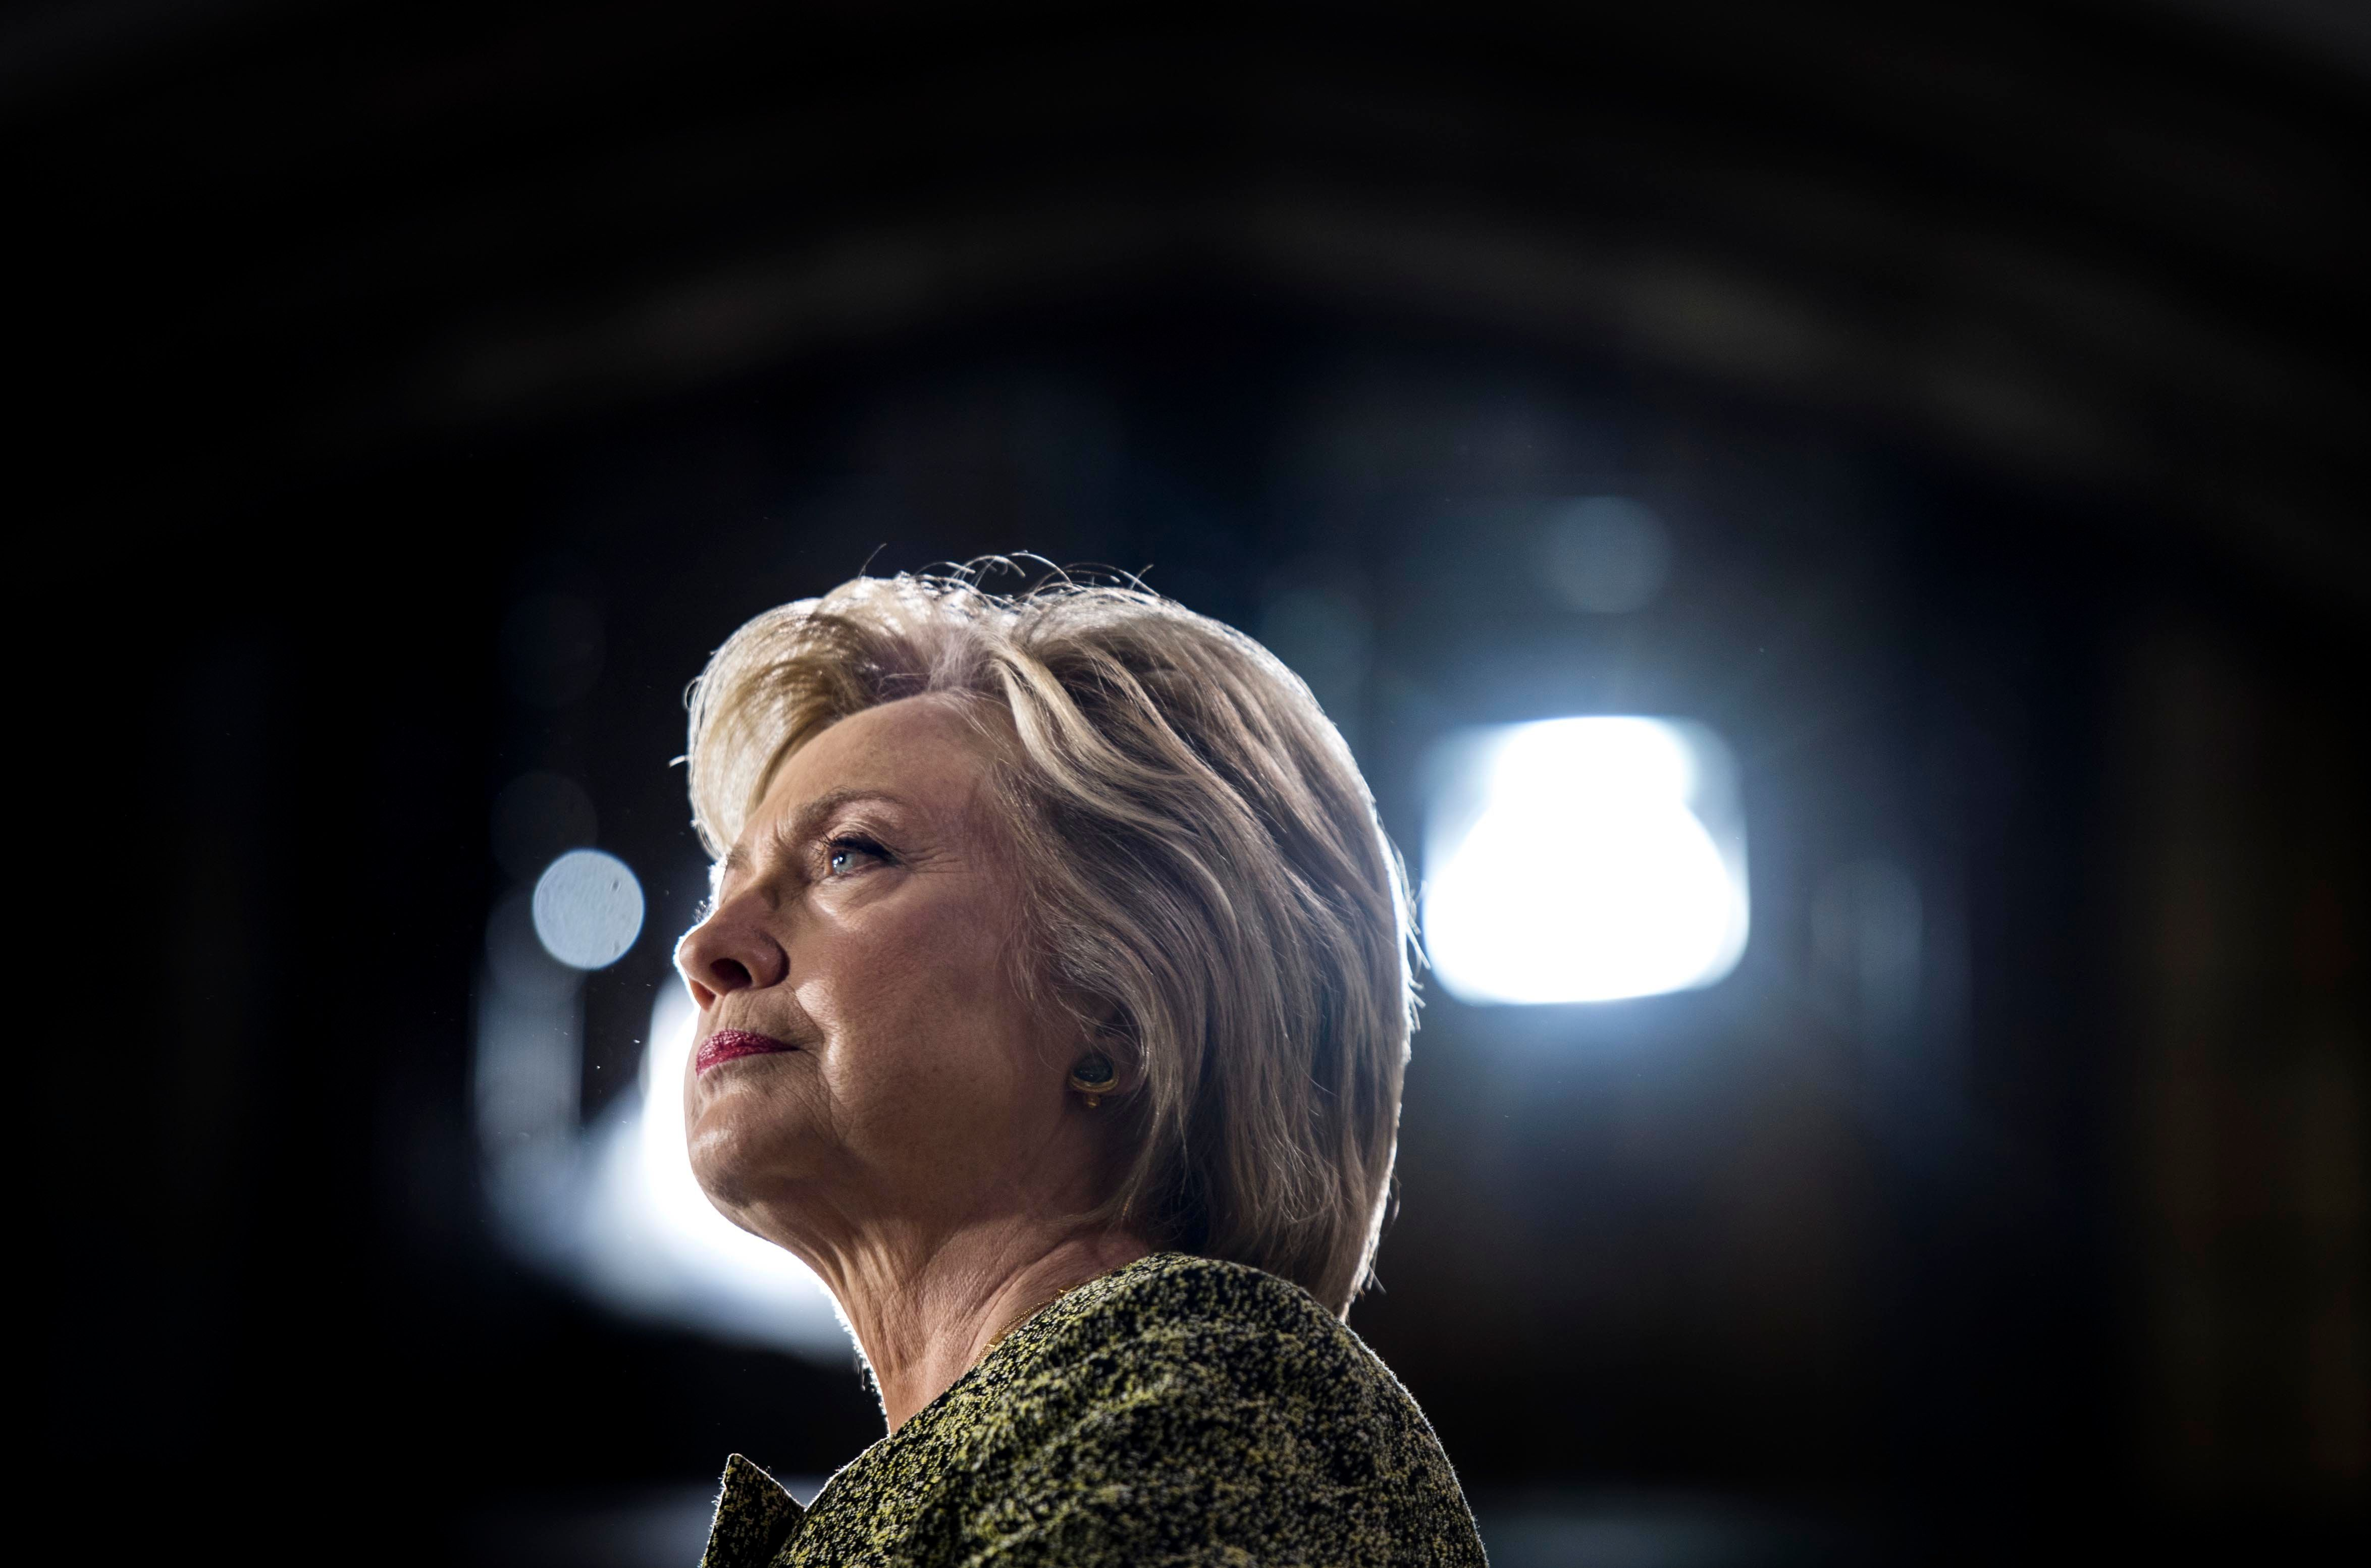 PHILADELPHIA, PA - Democratic Nominee for President of the United States former Secretary of State Hillary Clinton speaks to and meets Pennsylvania voters at Temple University in Philadelphia, Pennsylvania on Monday September 19, 2016. (Photo by Melina Mara/The Washington Post via Getty Images)